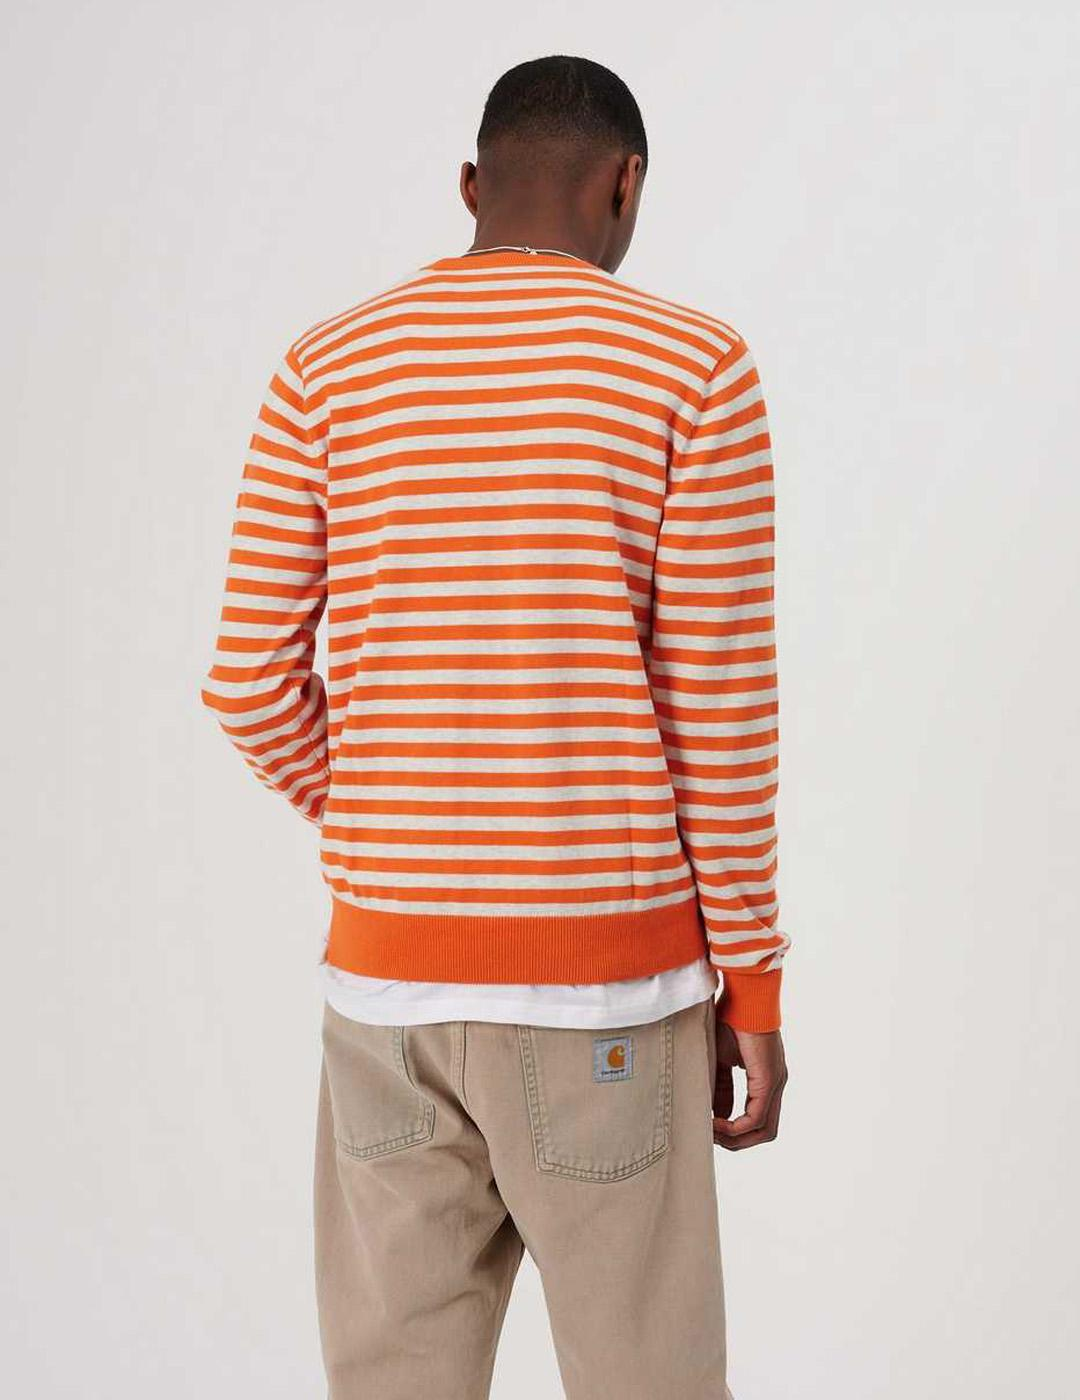 Jersey Carhartt - SCOTTY - Clockwork ash heather